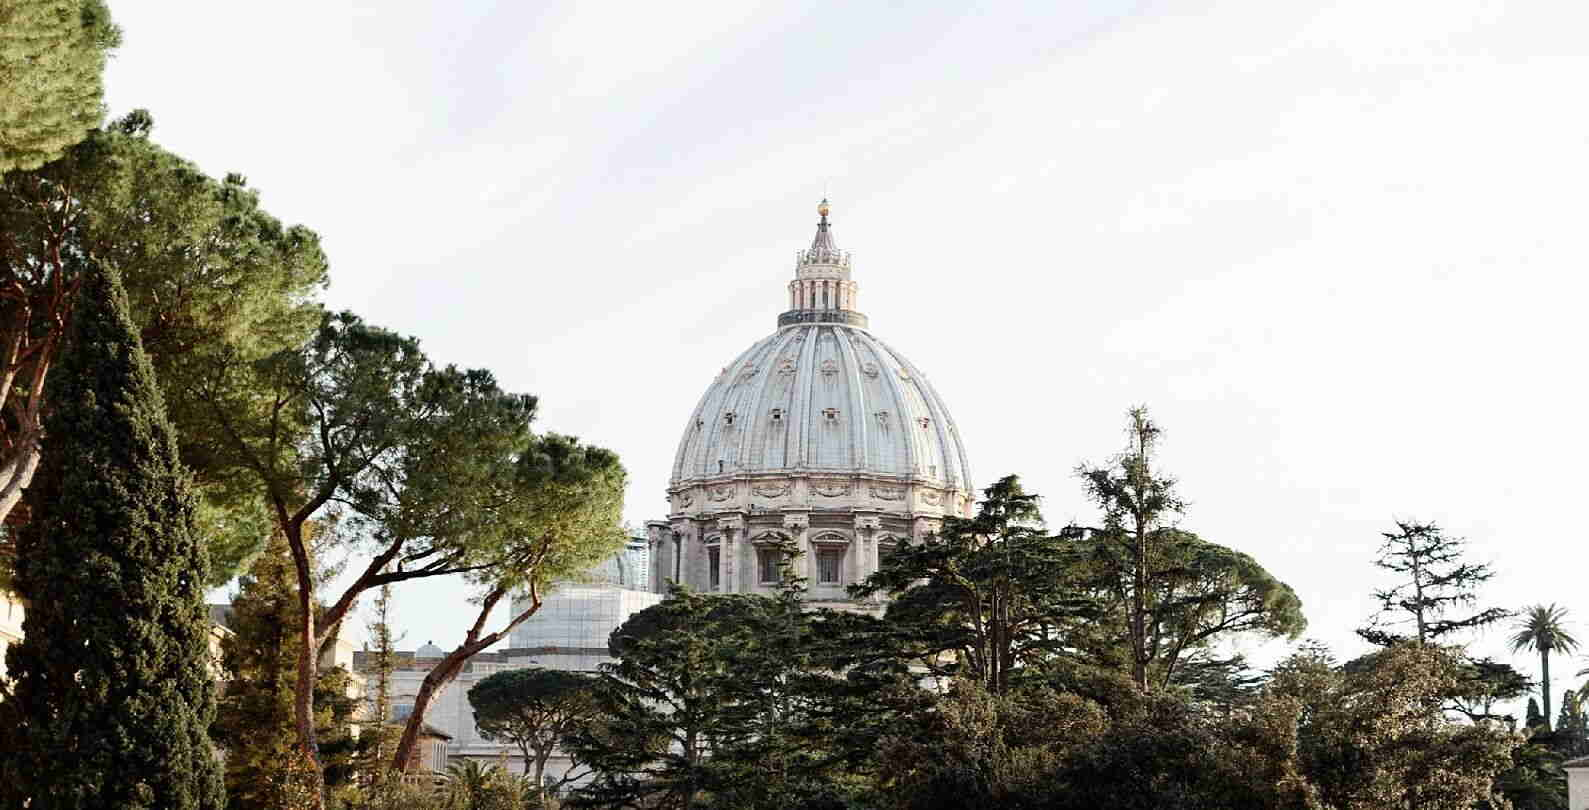 Are Cameras allowed in the Vatican City?